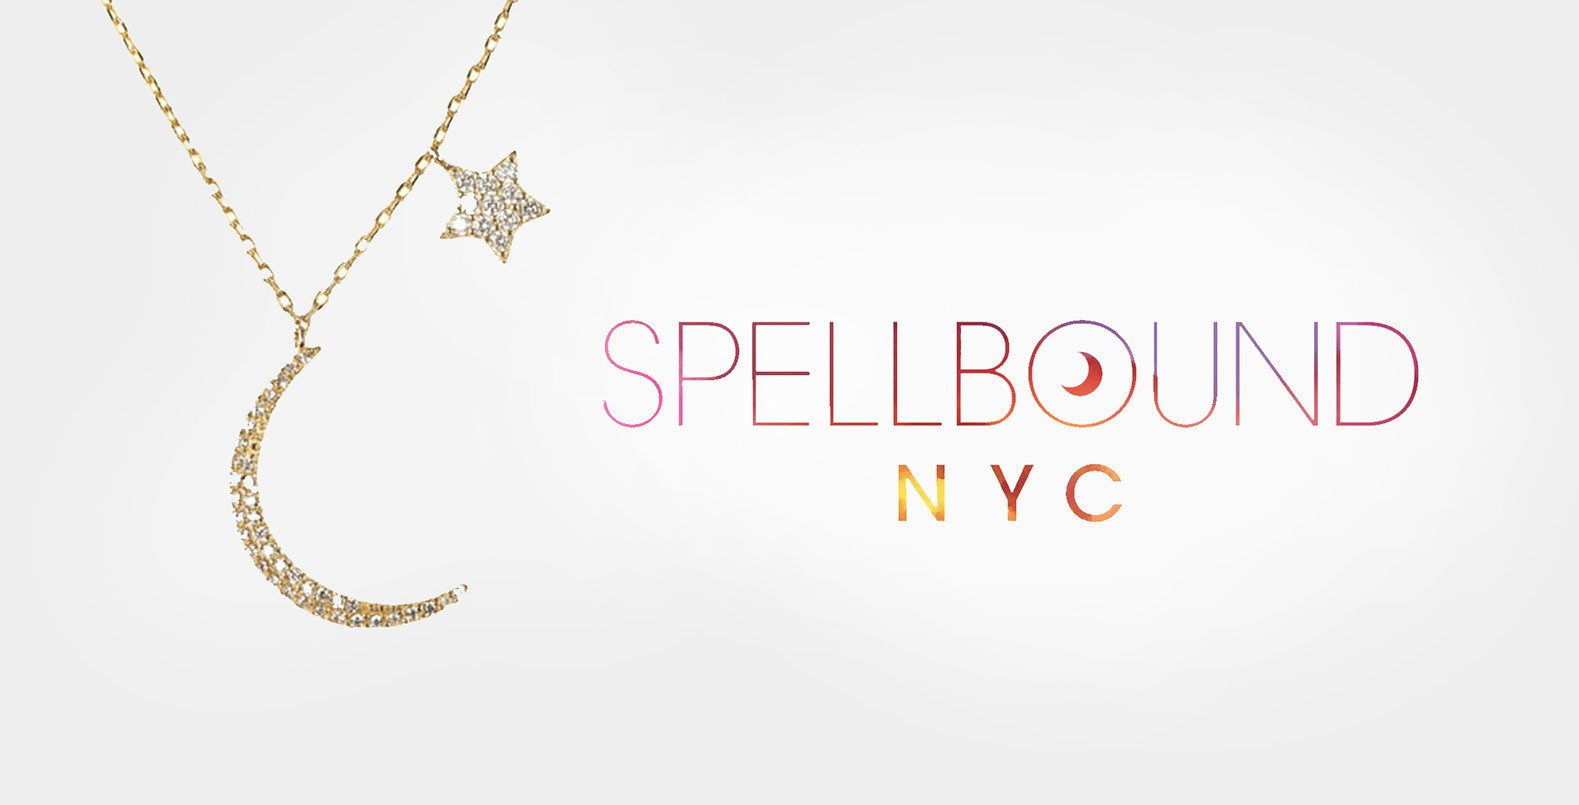 Spellbound, a unique hand-painted logo design for a jewelry company